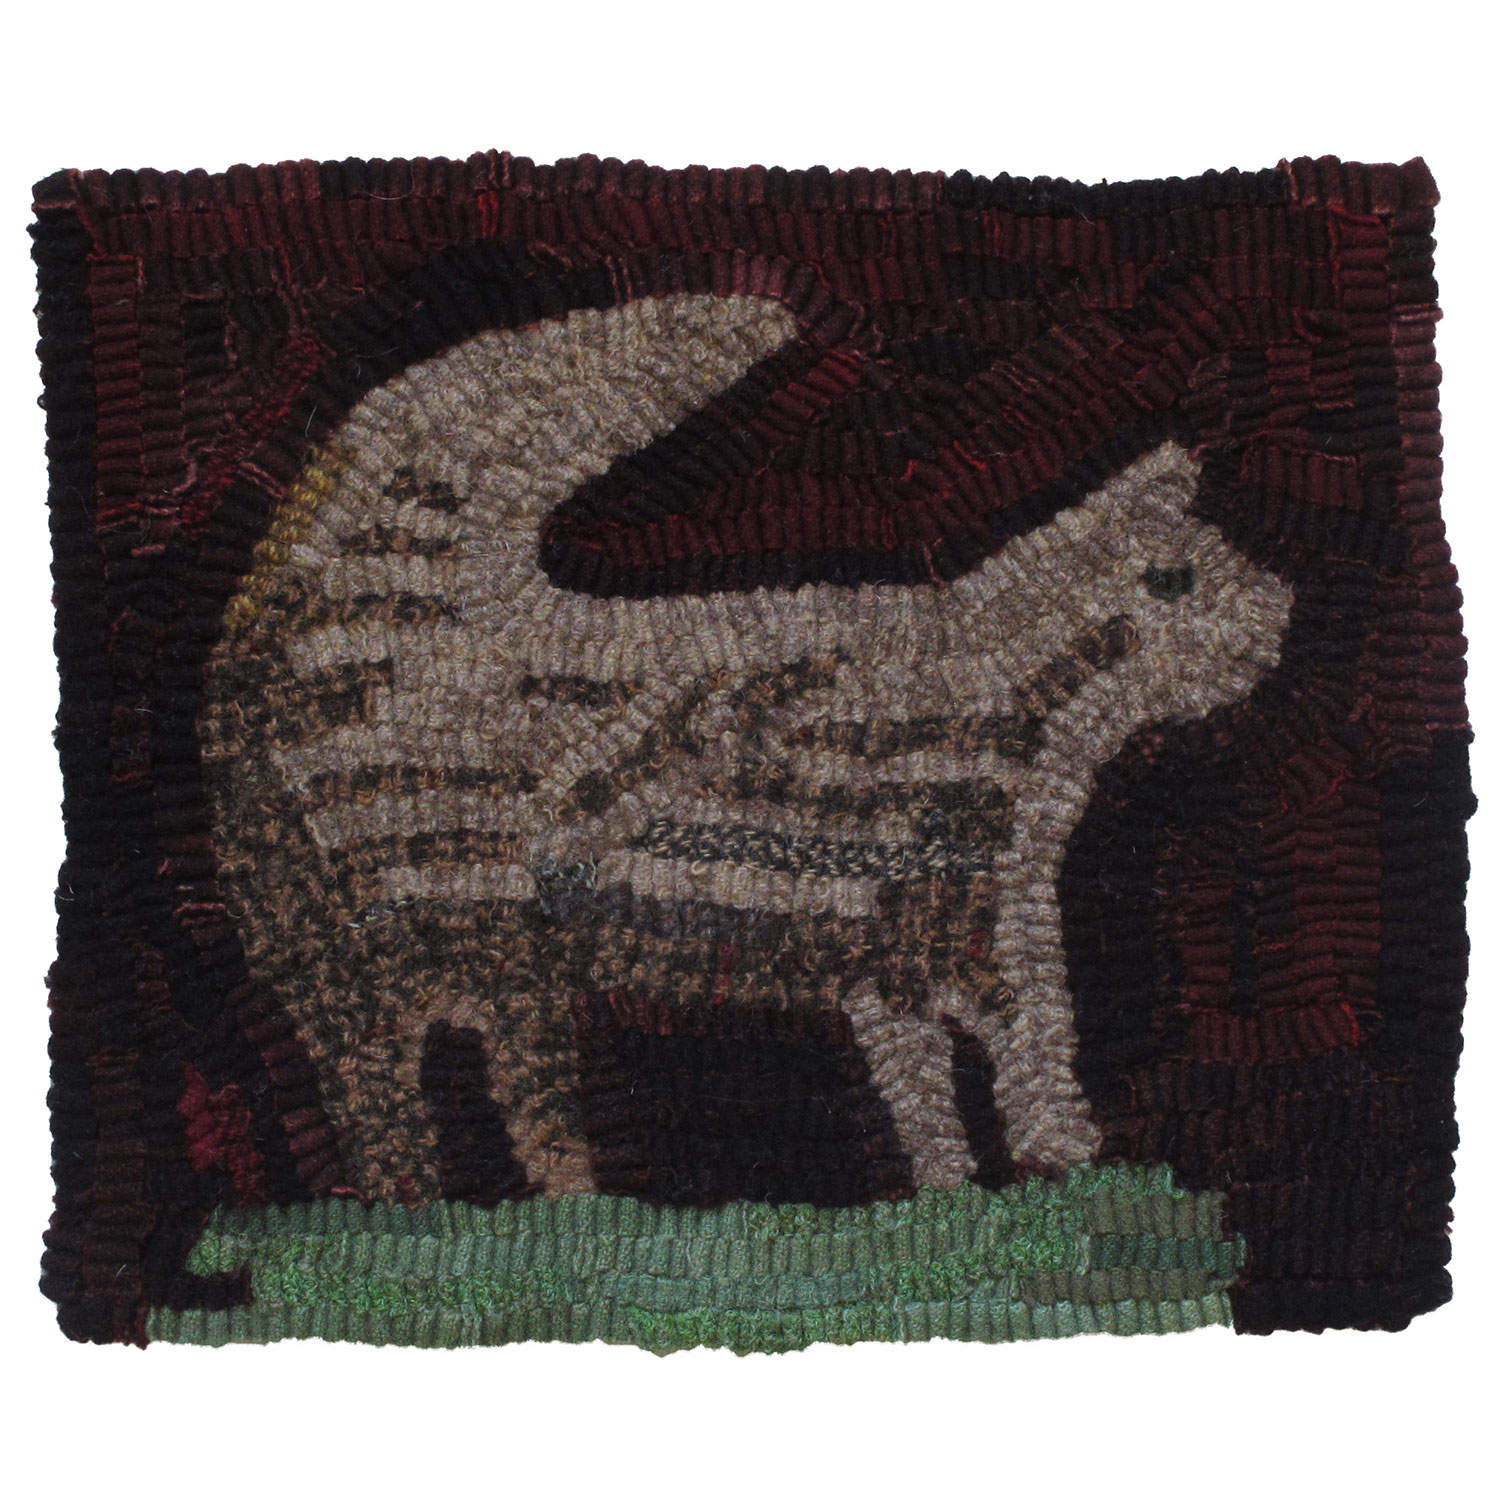 Grayson the Cat Hooked Rug